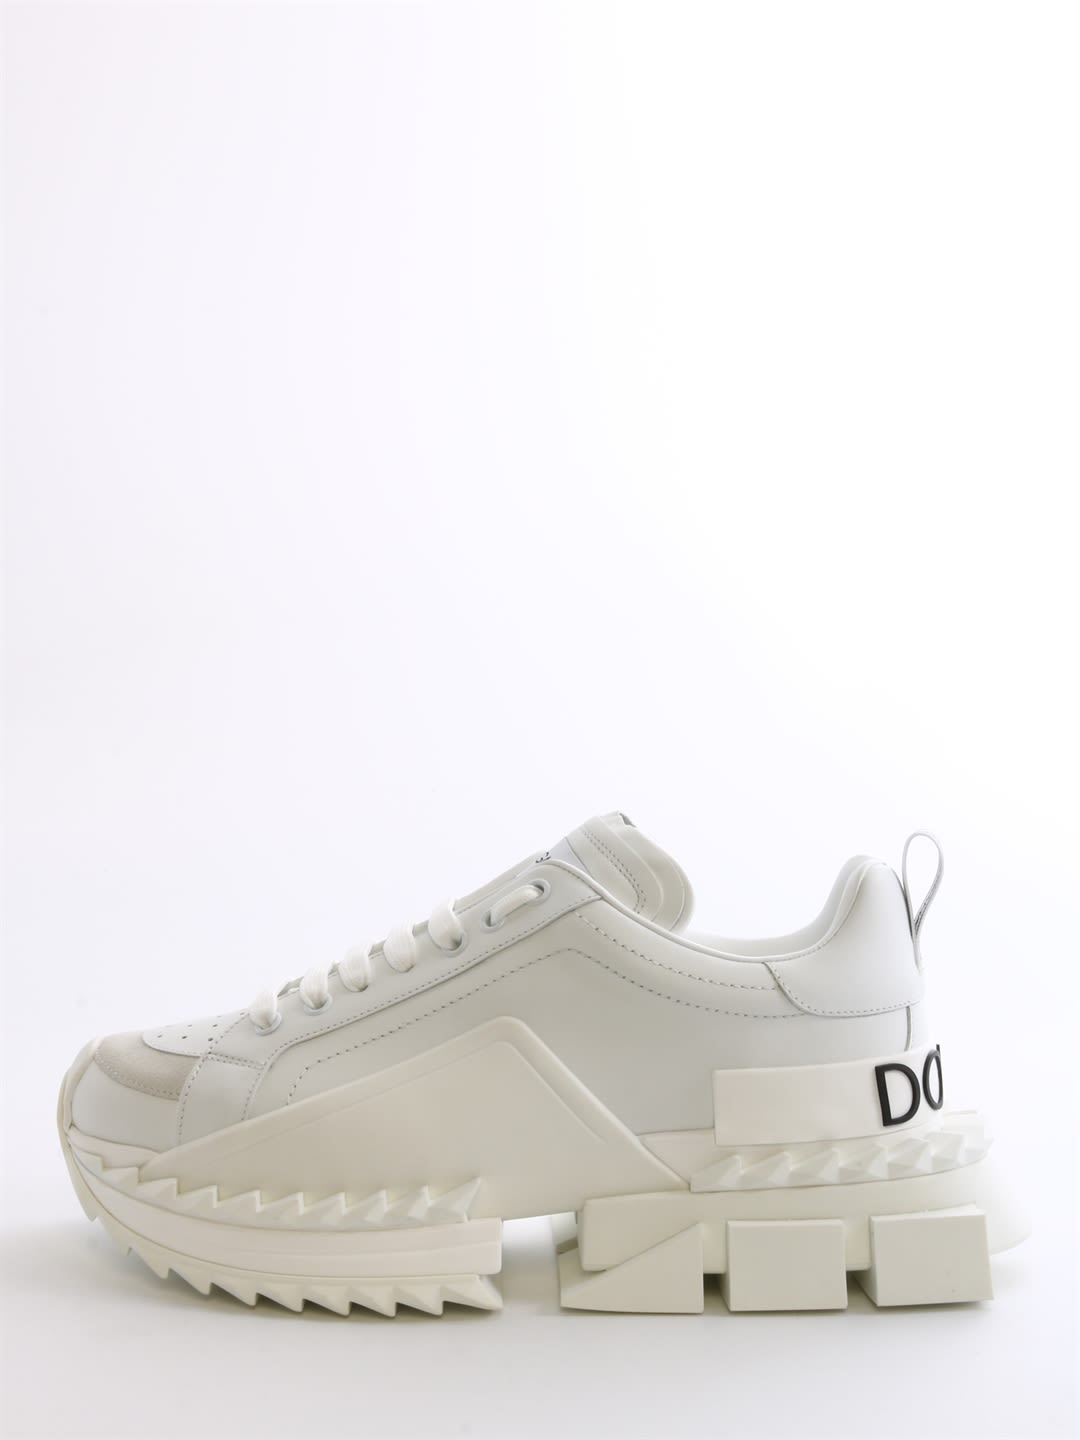 Dolce & Gabbana Sneaker Super King White